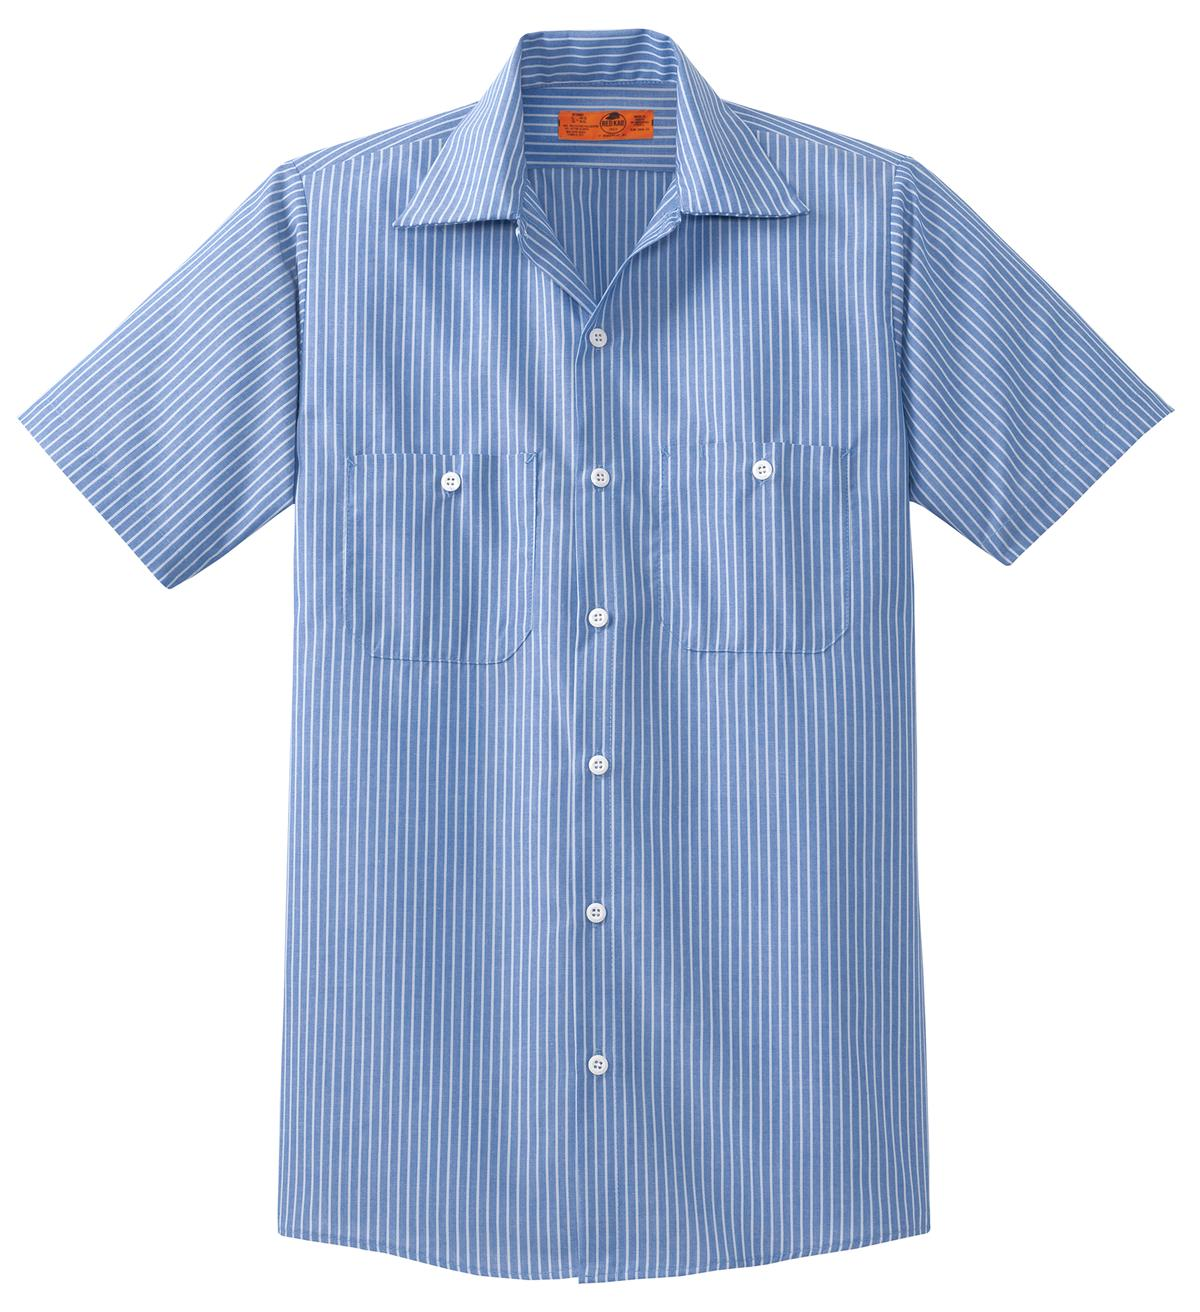 Red Kap ®  Long Size, Short Sleeve Striped Industrial Work Shirt. CS20LONG - Blue/ White